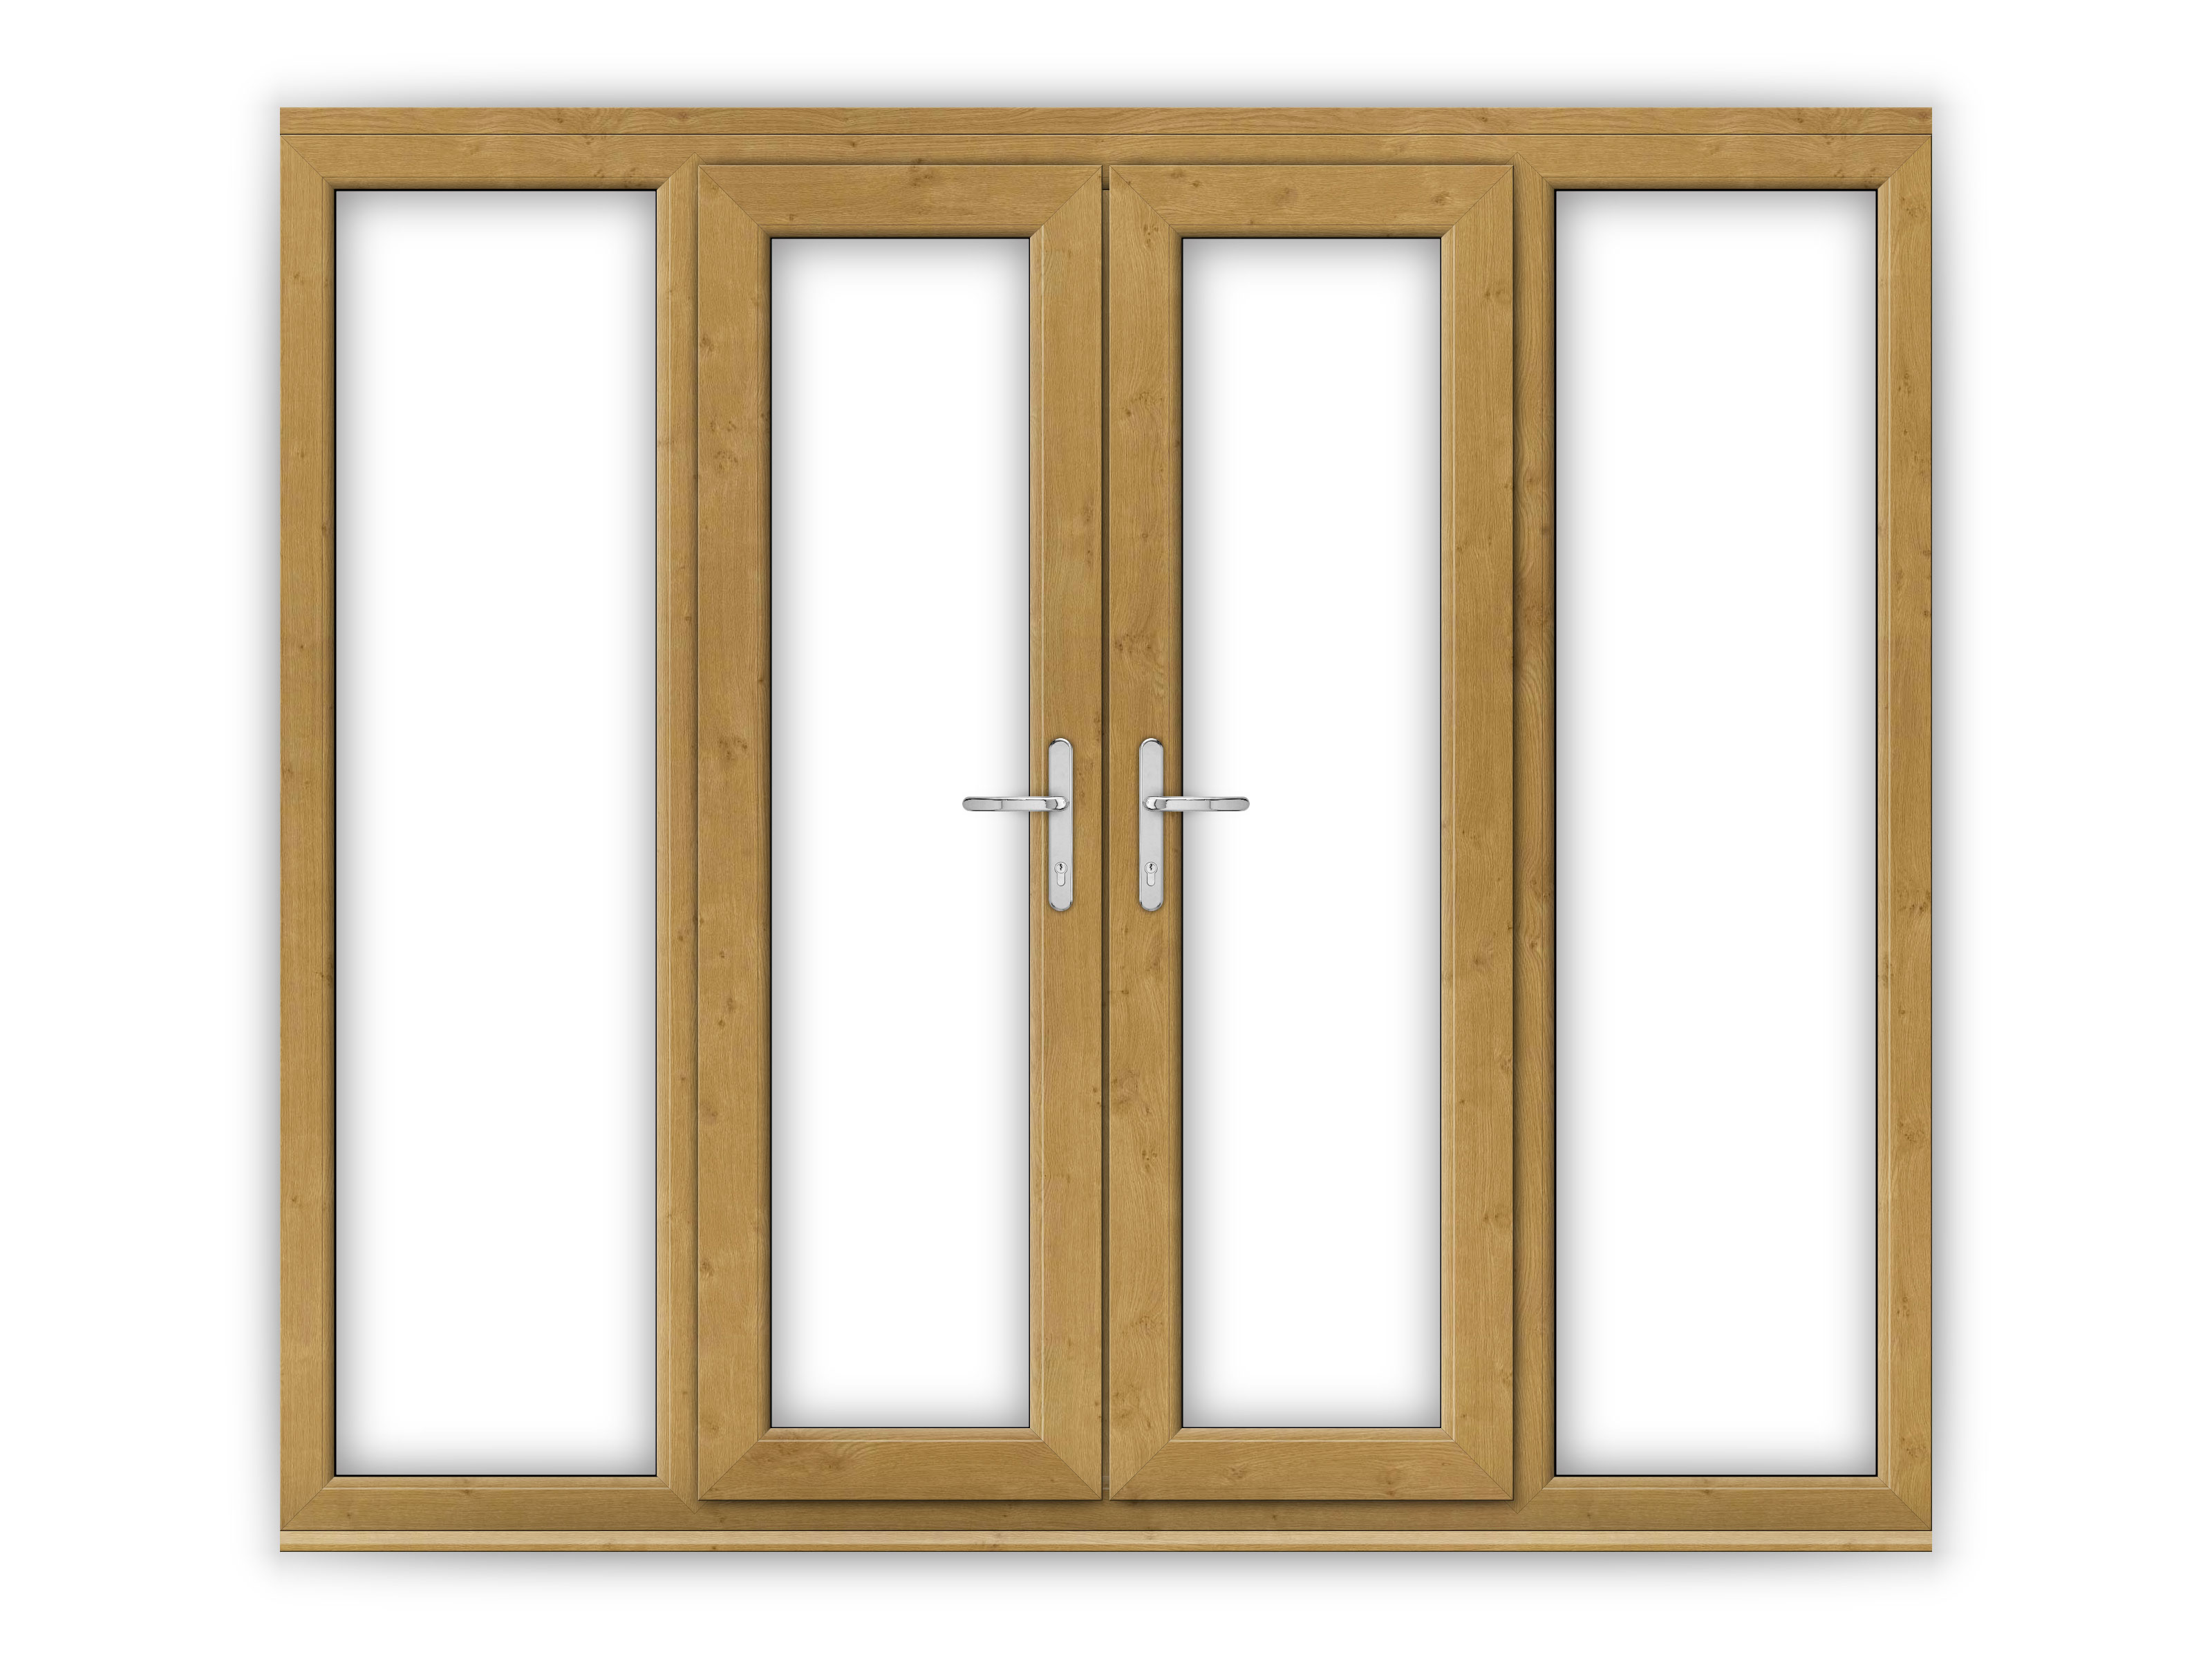 4ft irish oak upvc french doors with wide side panels for Upvc french doors 1790 x 2090mm